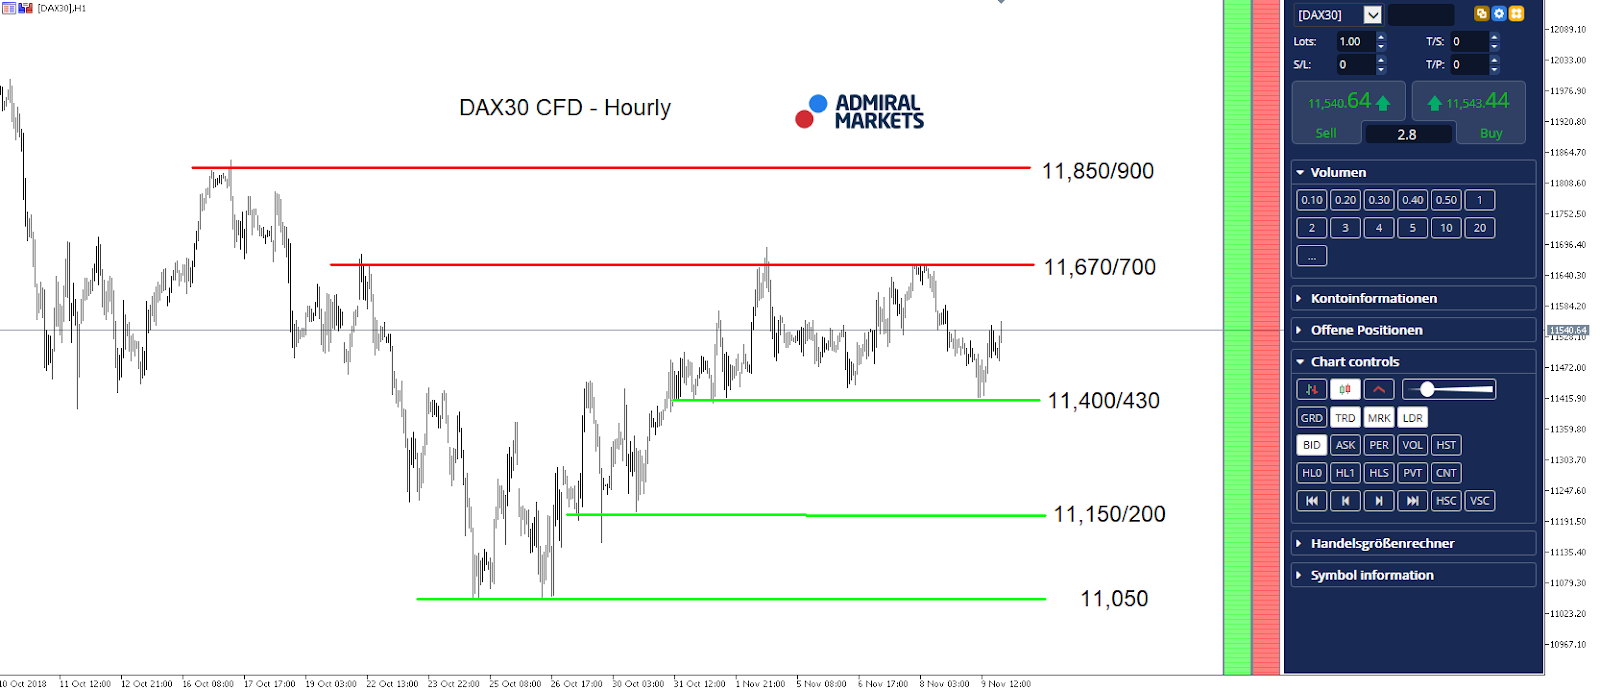 DAX30 CFD Hourly Chart